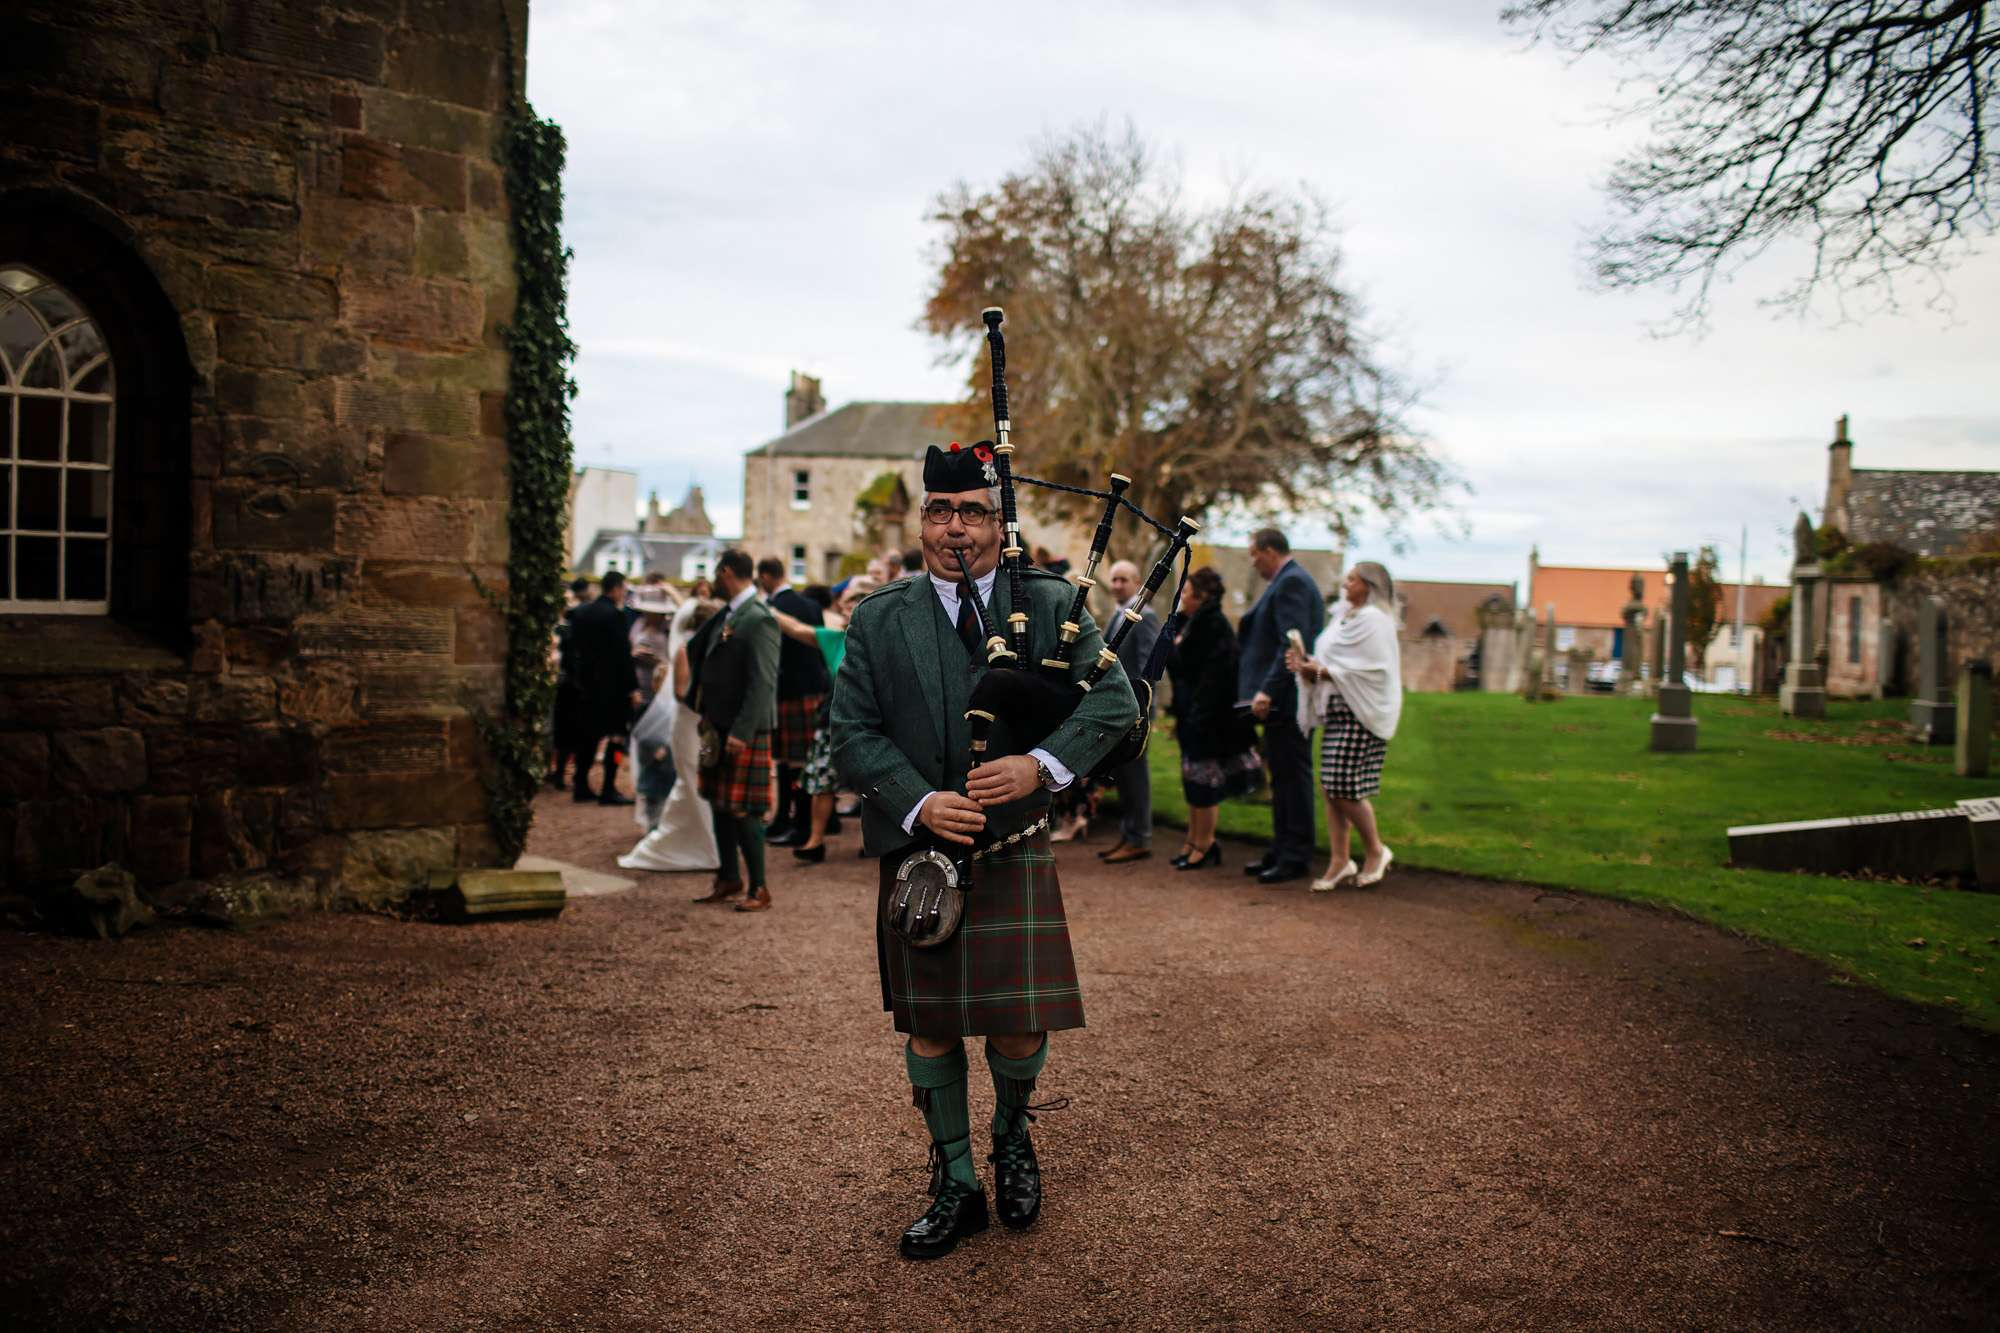 Piper at a church wedding in Scotland